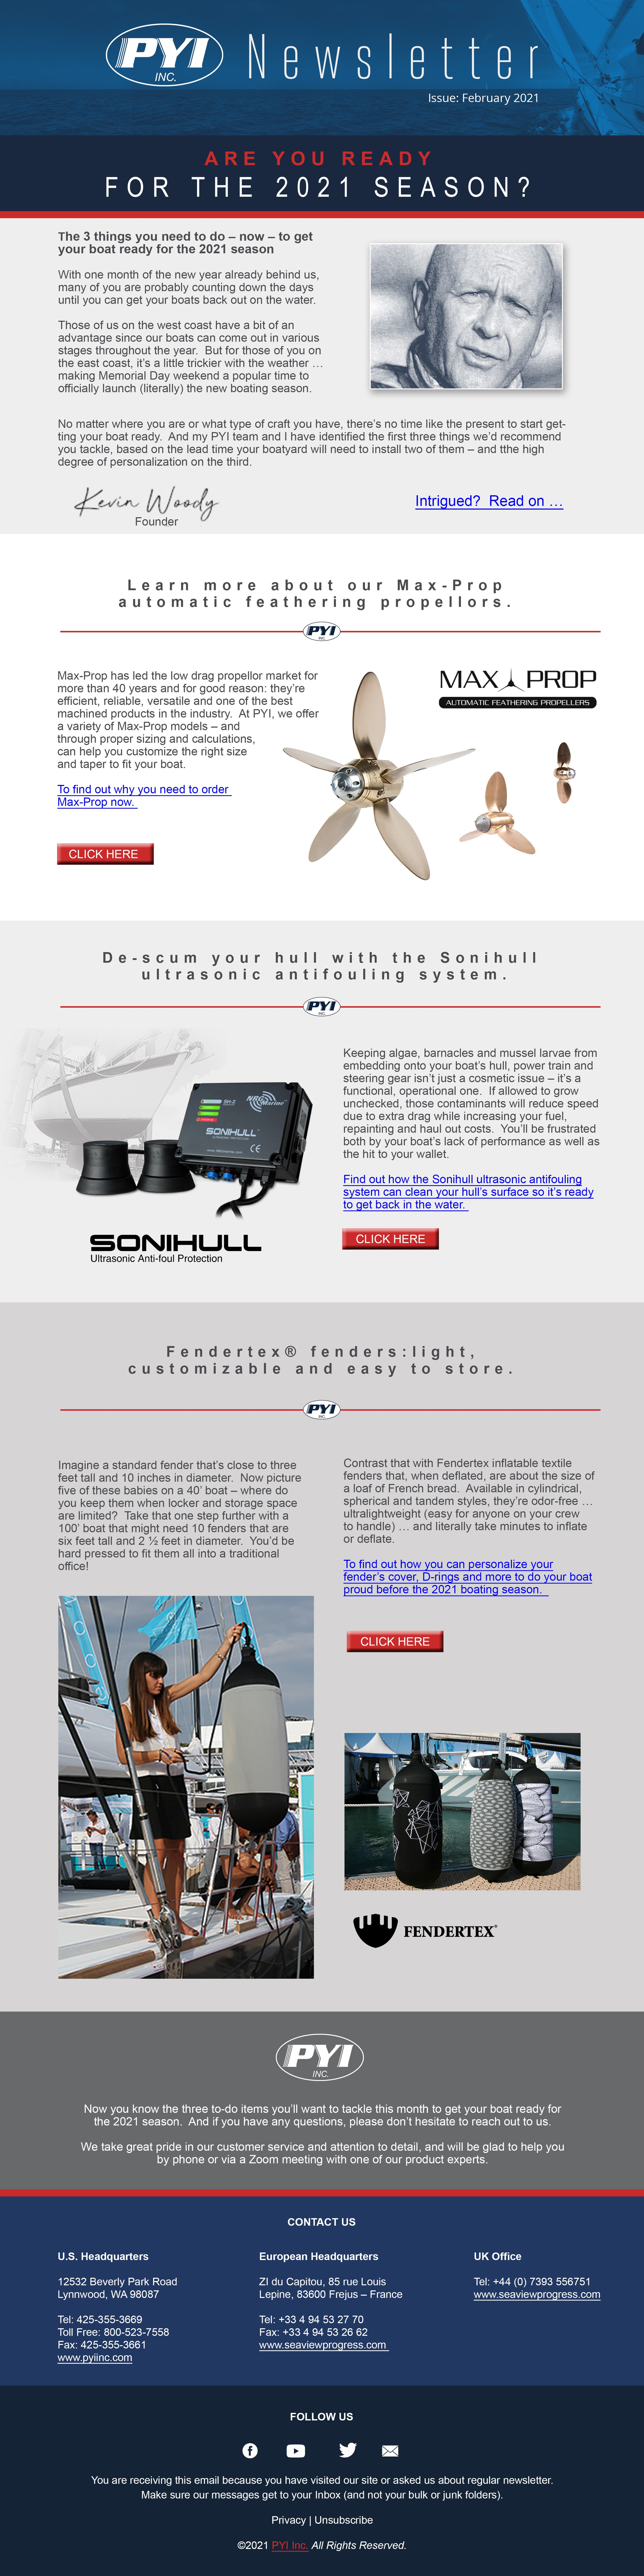 Sleek, Modern and Innovative Newsletter Design for Powerboat and sailing Manufacturer - Yes it needs to have the wow fac